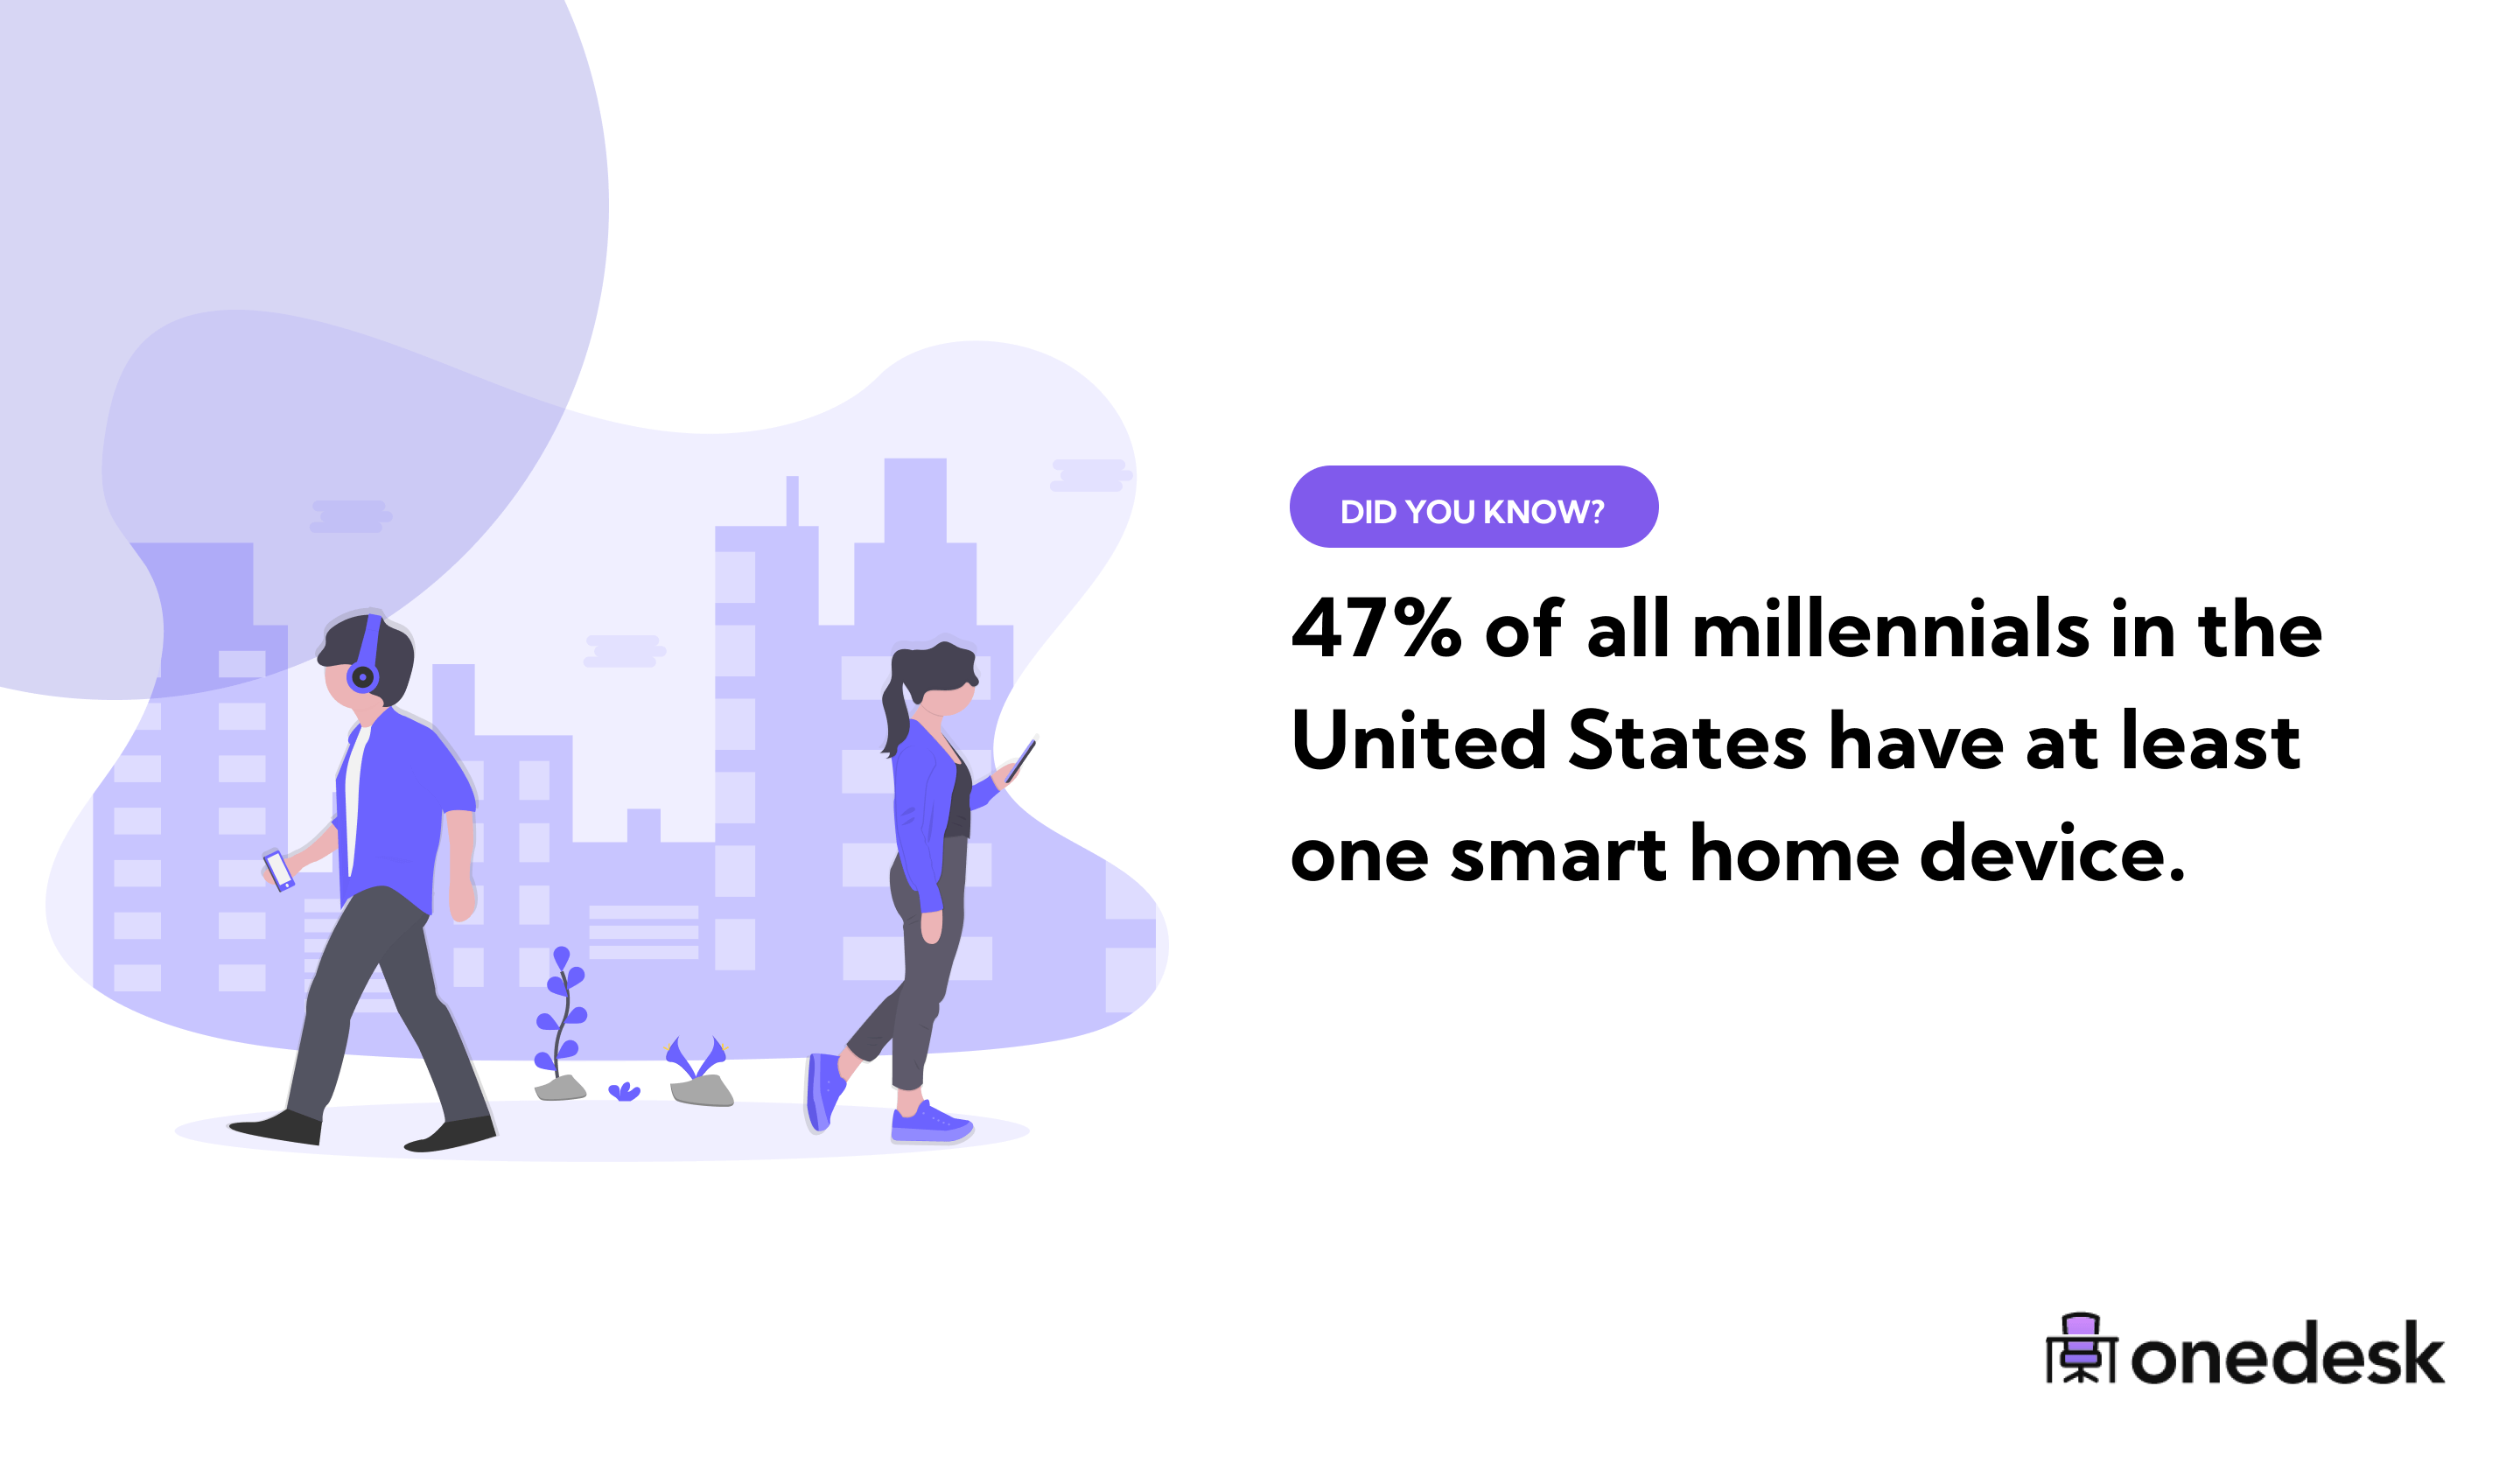 percent of millennials that have at least one smart home device